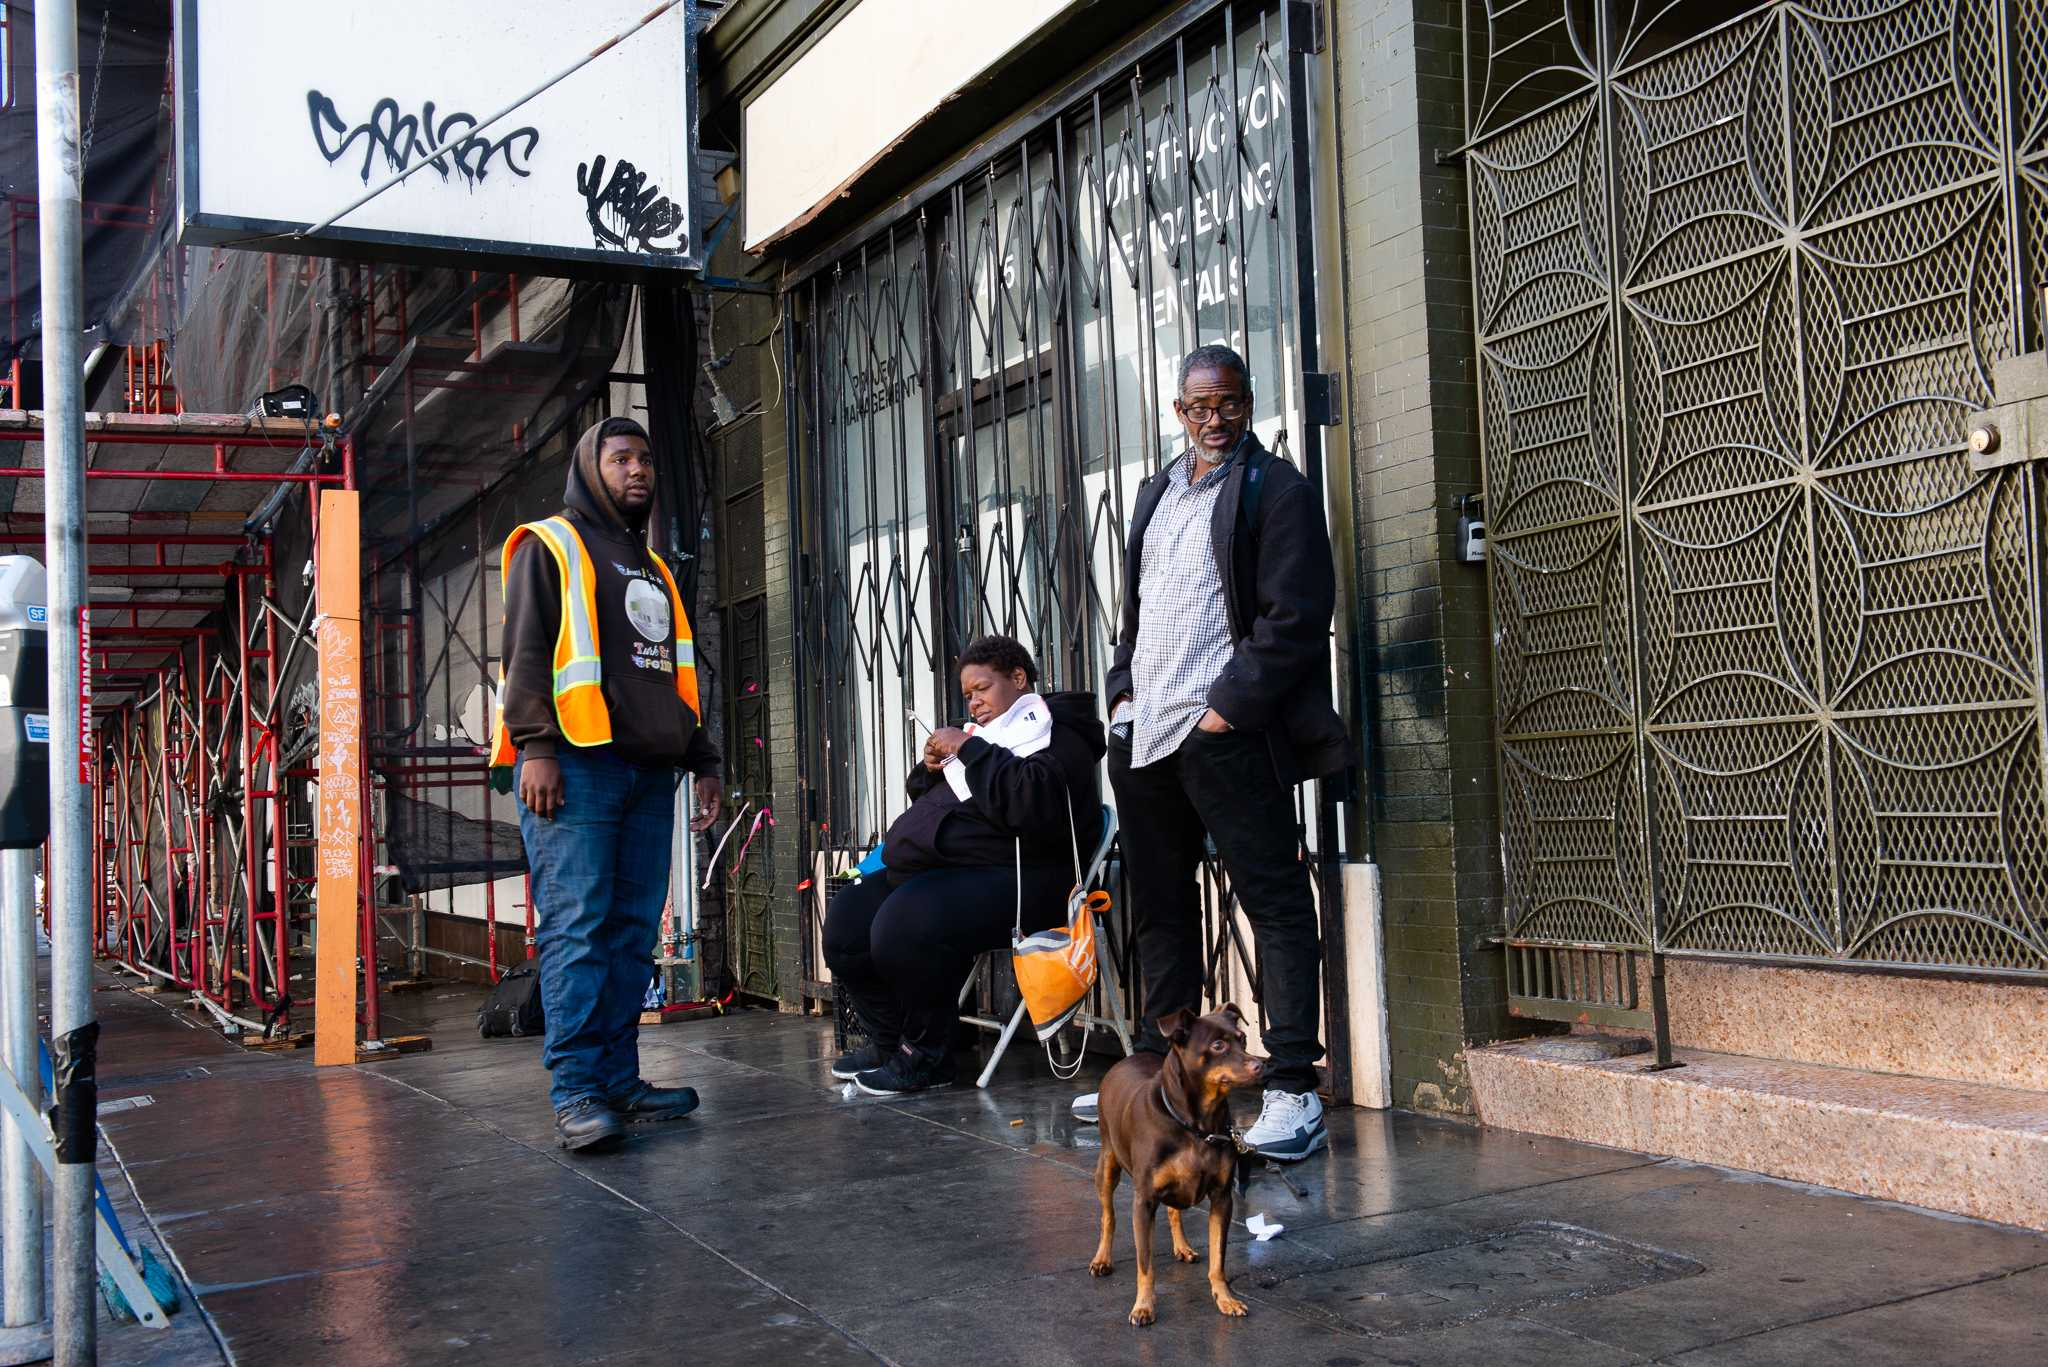 SF State student Eugene Riley, 25, talks to an old friend Bubbles, middle, a friend that he met while he was living in the streets of San Francisco on Saturday, Sept. 15, 2018. (David Rodriguez/Xpress)